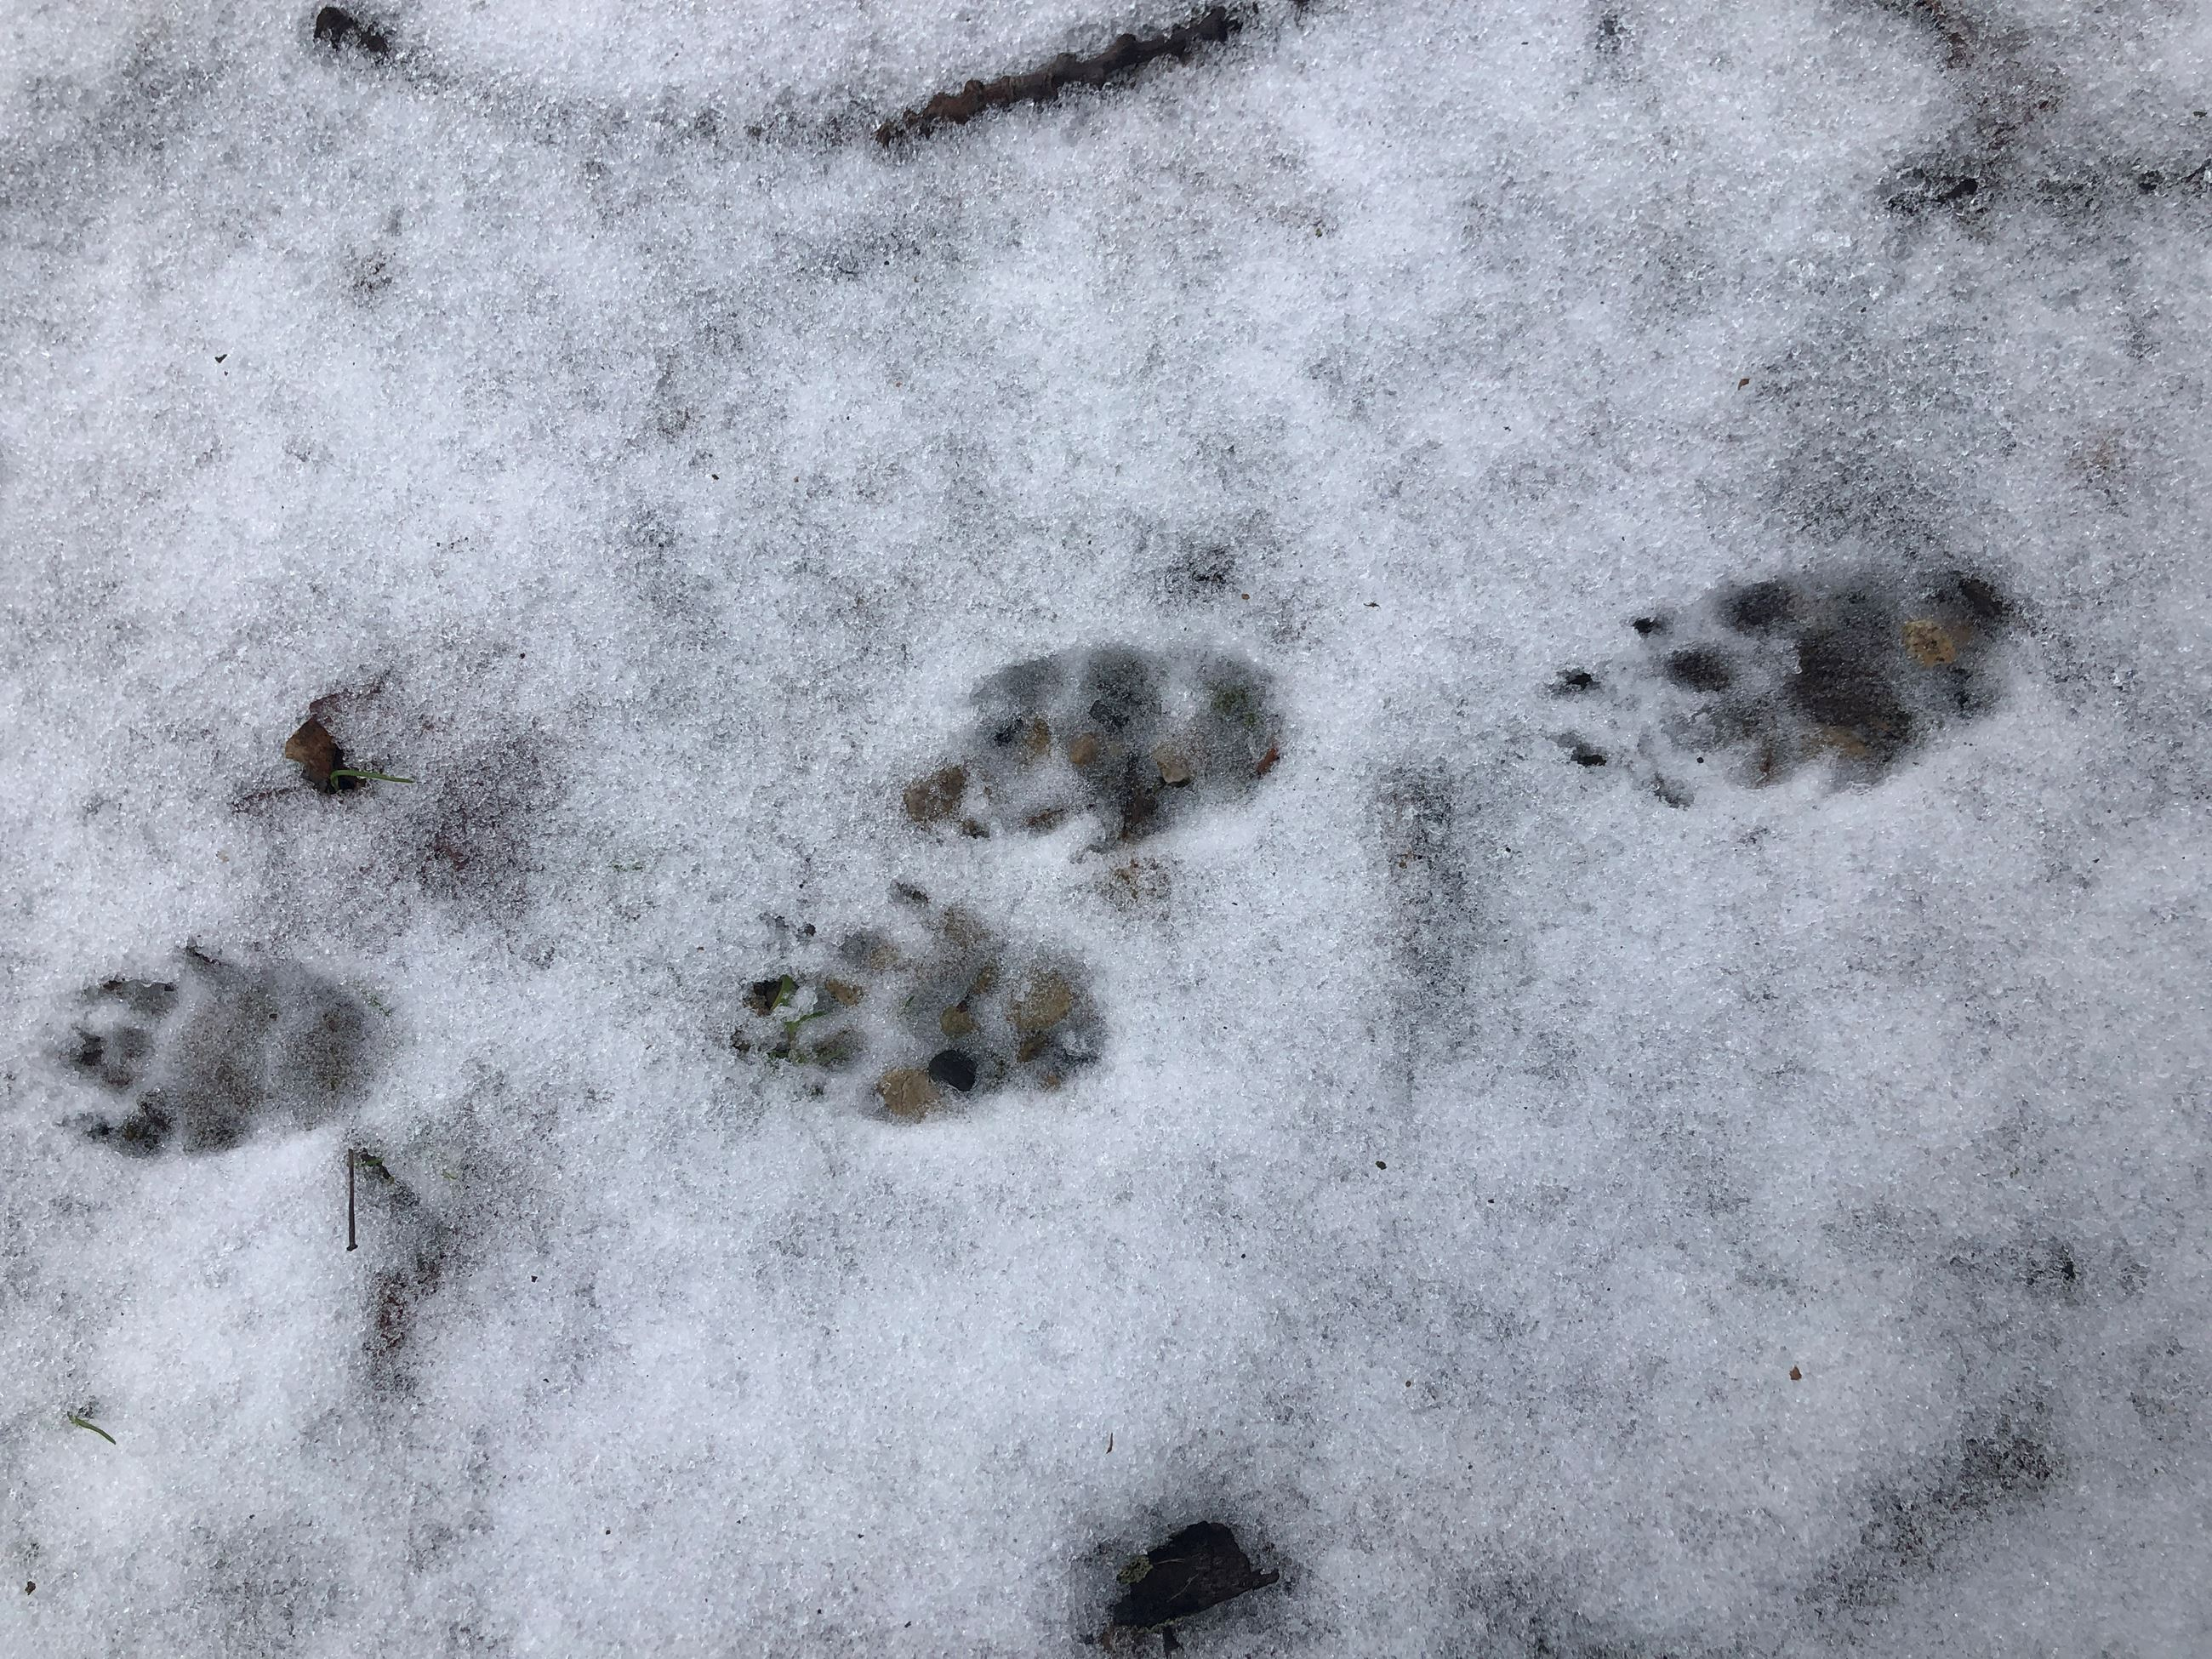 Some animal tracks in the snow.